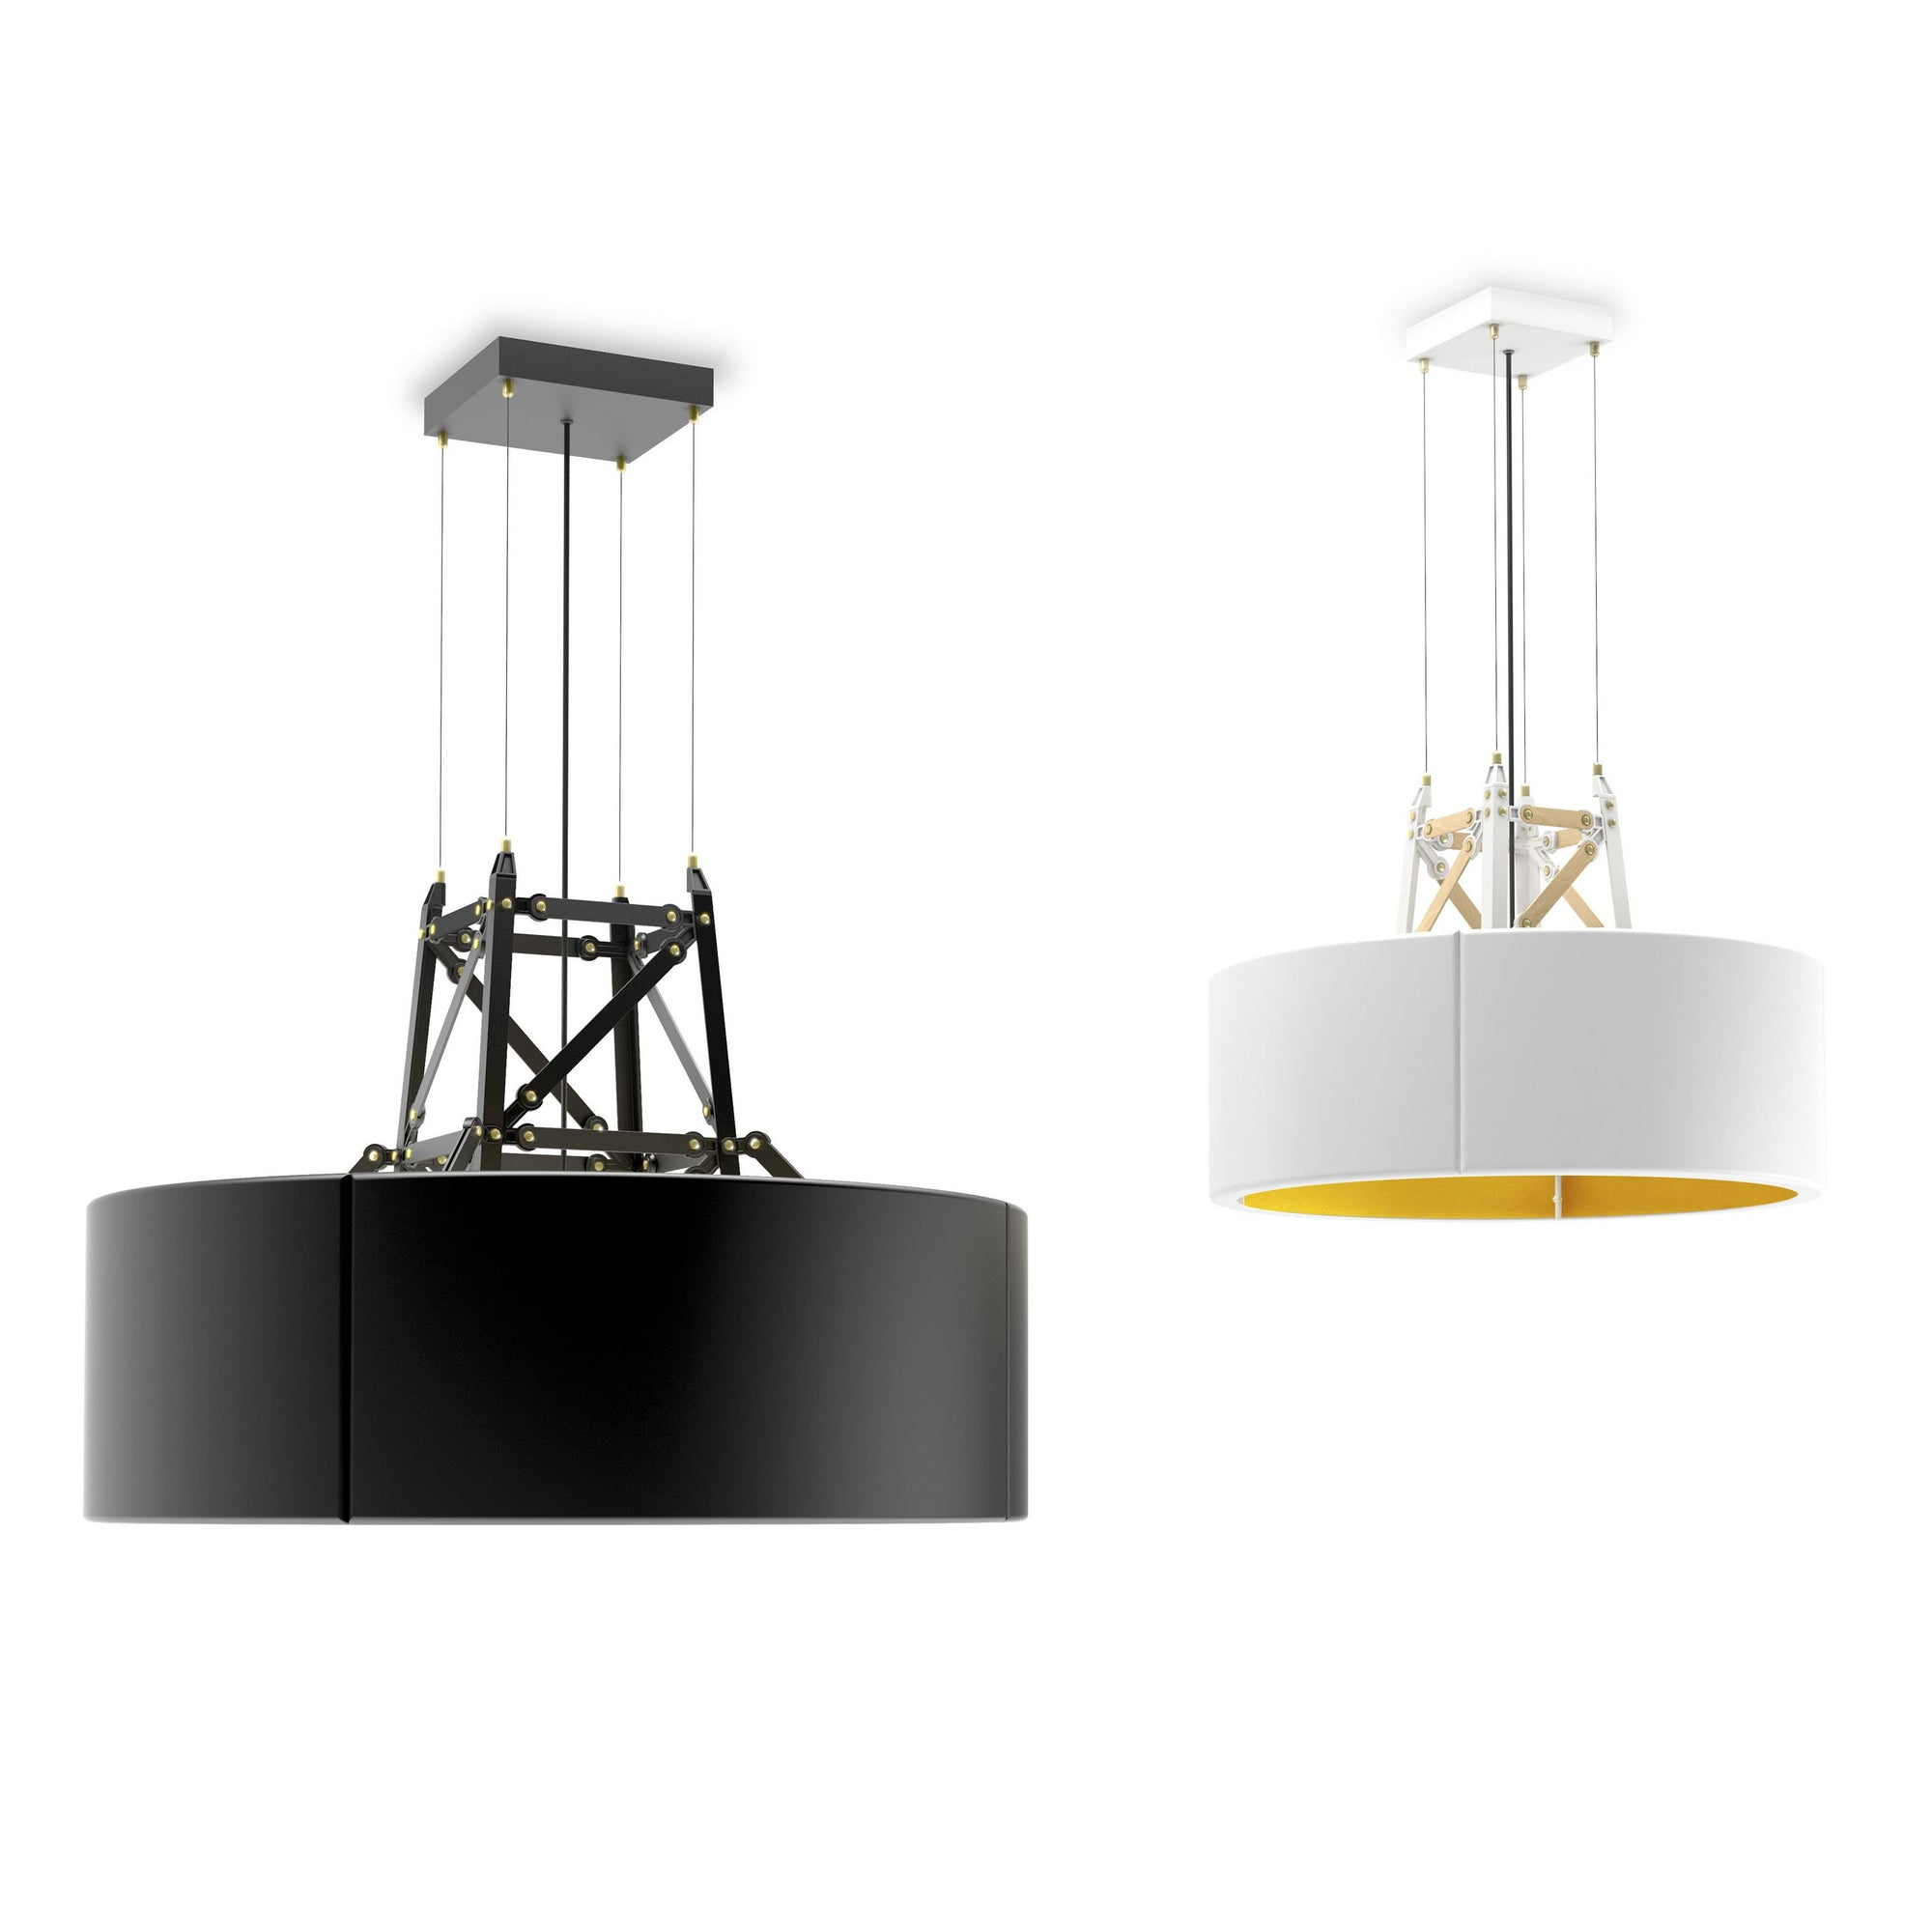 CONSTRUCTION LAMP SUSPENDED